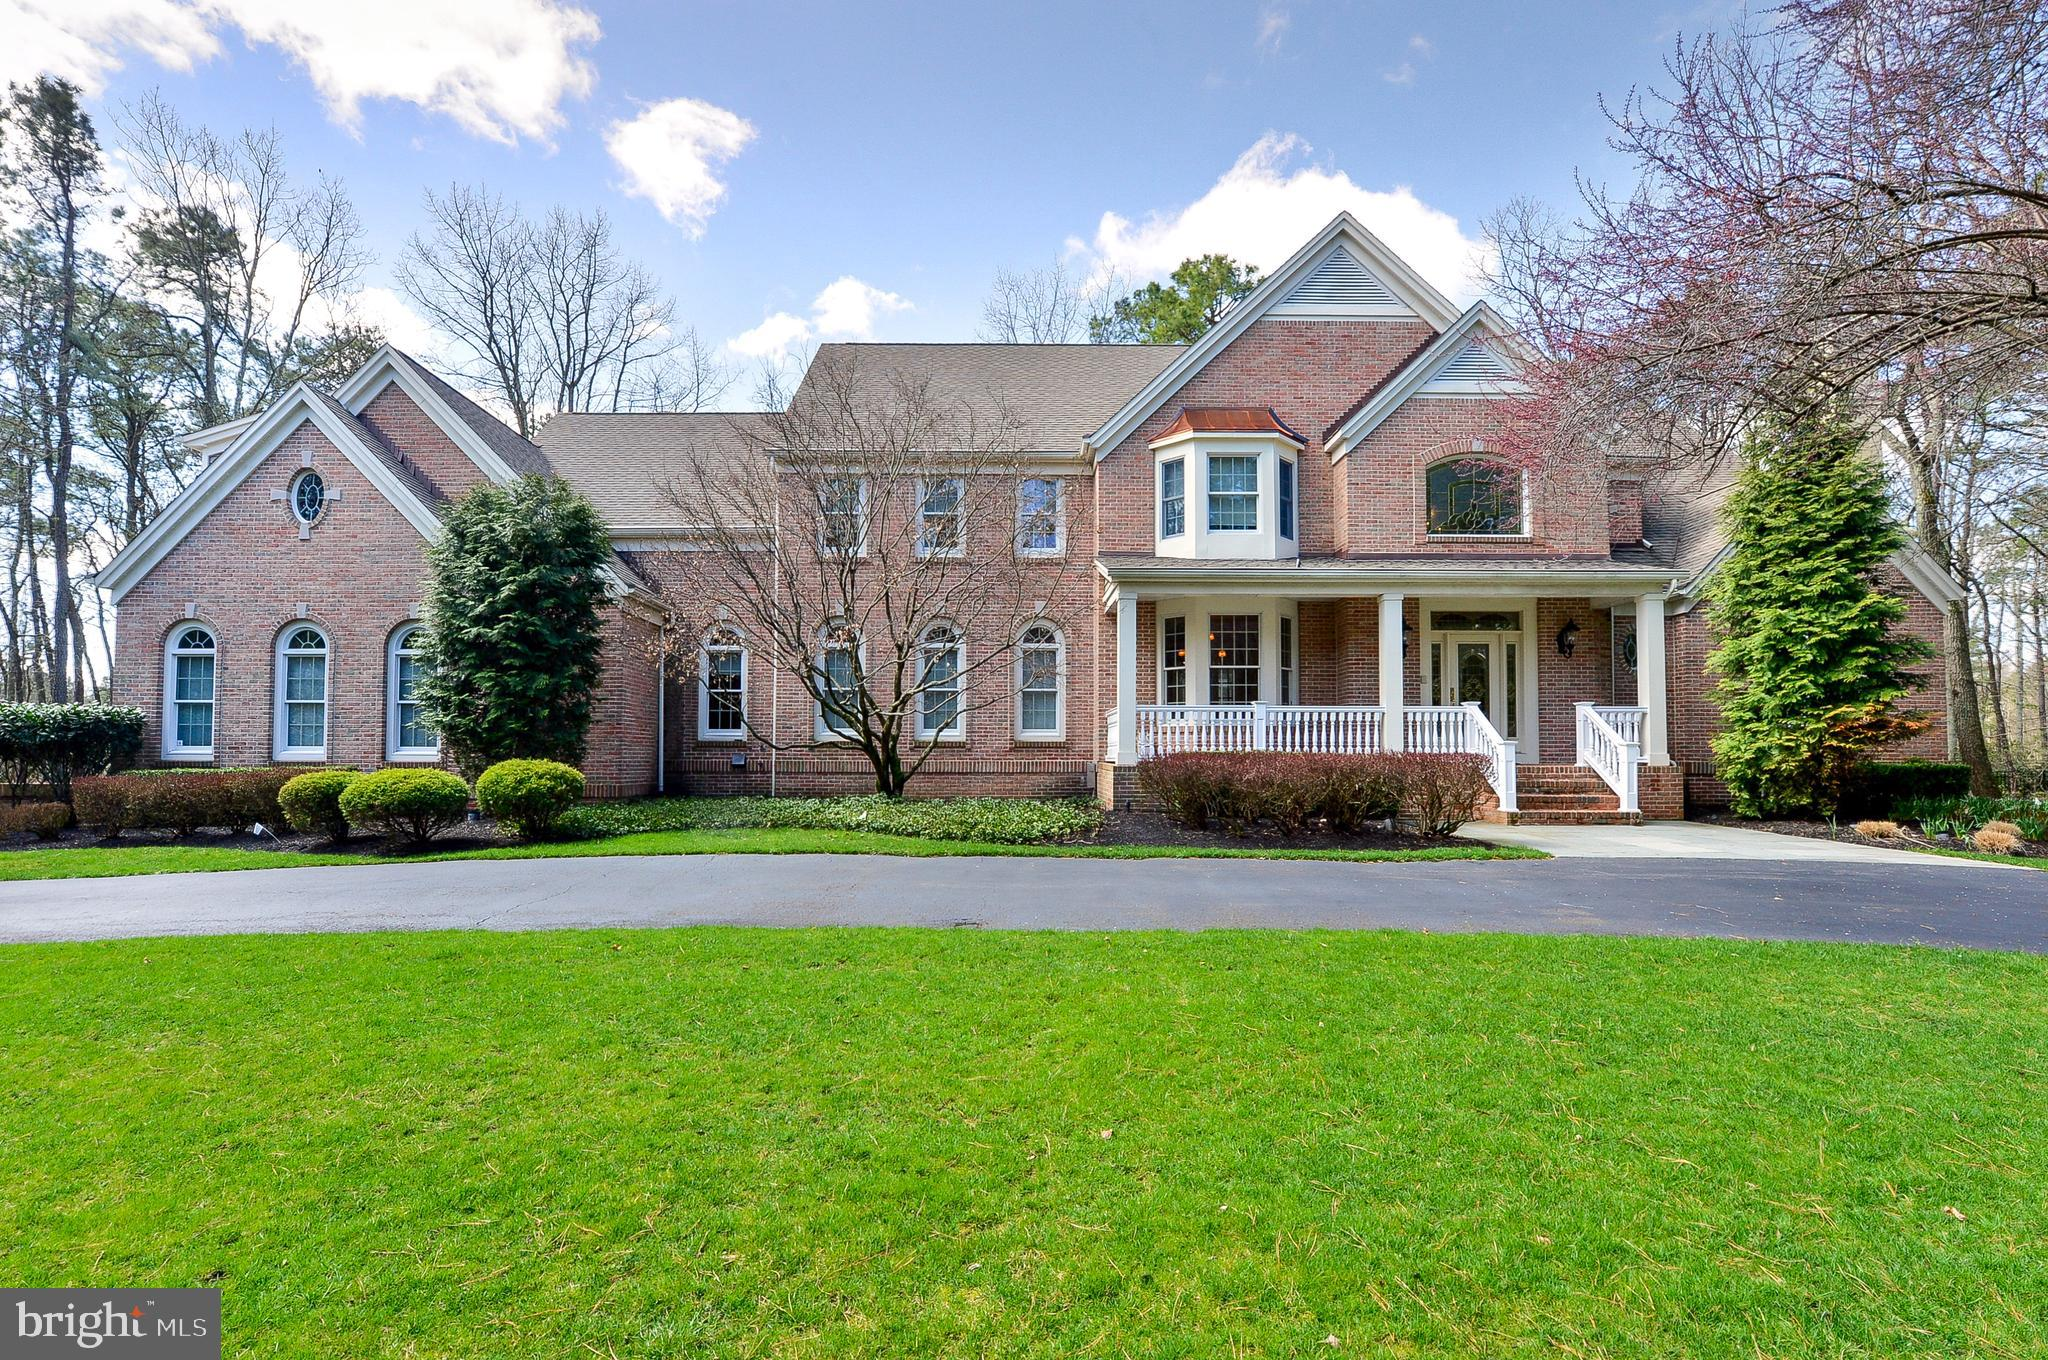 5 BRADFORD COURT, MEDFORD, NJ 08055